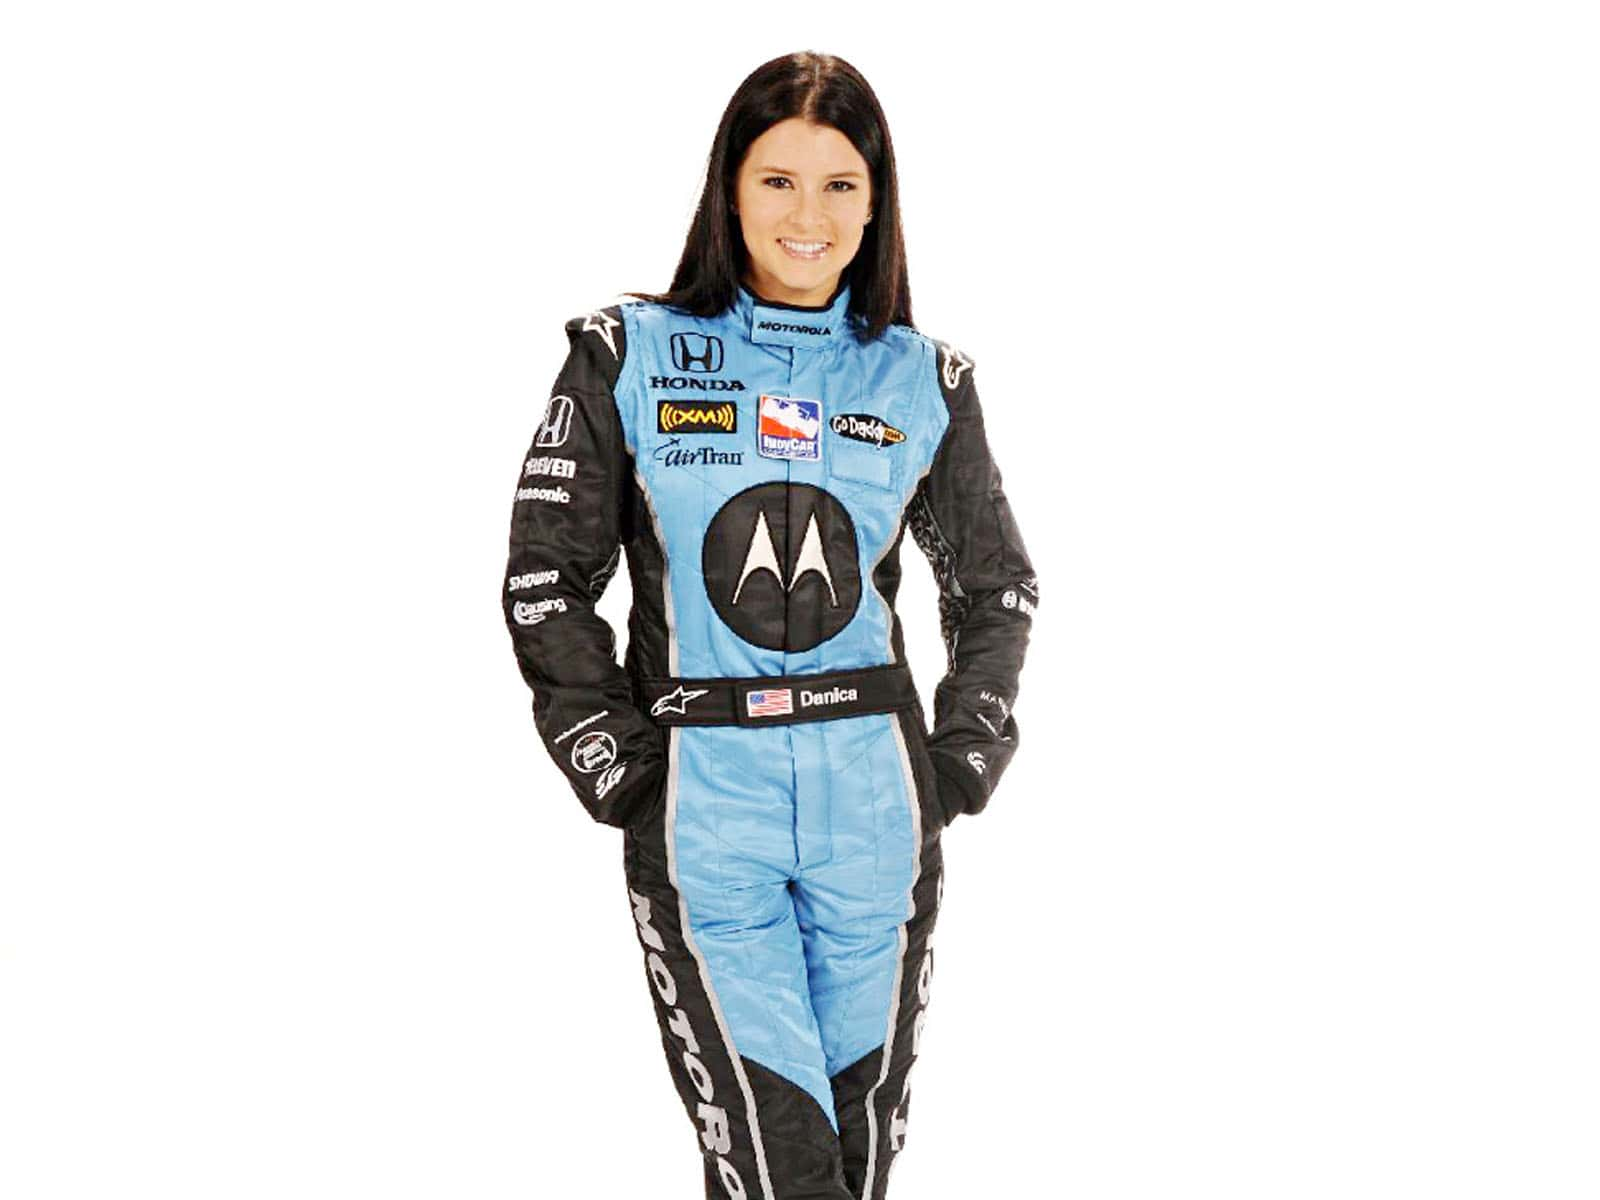 Danica Sue Patrick Wallpaper